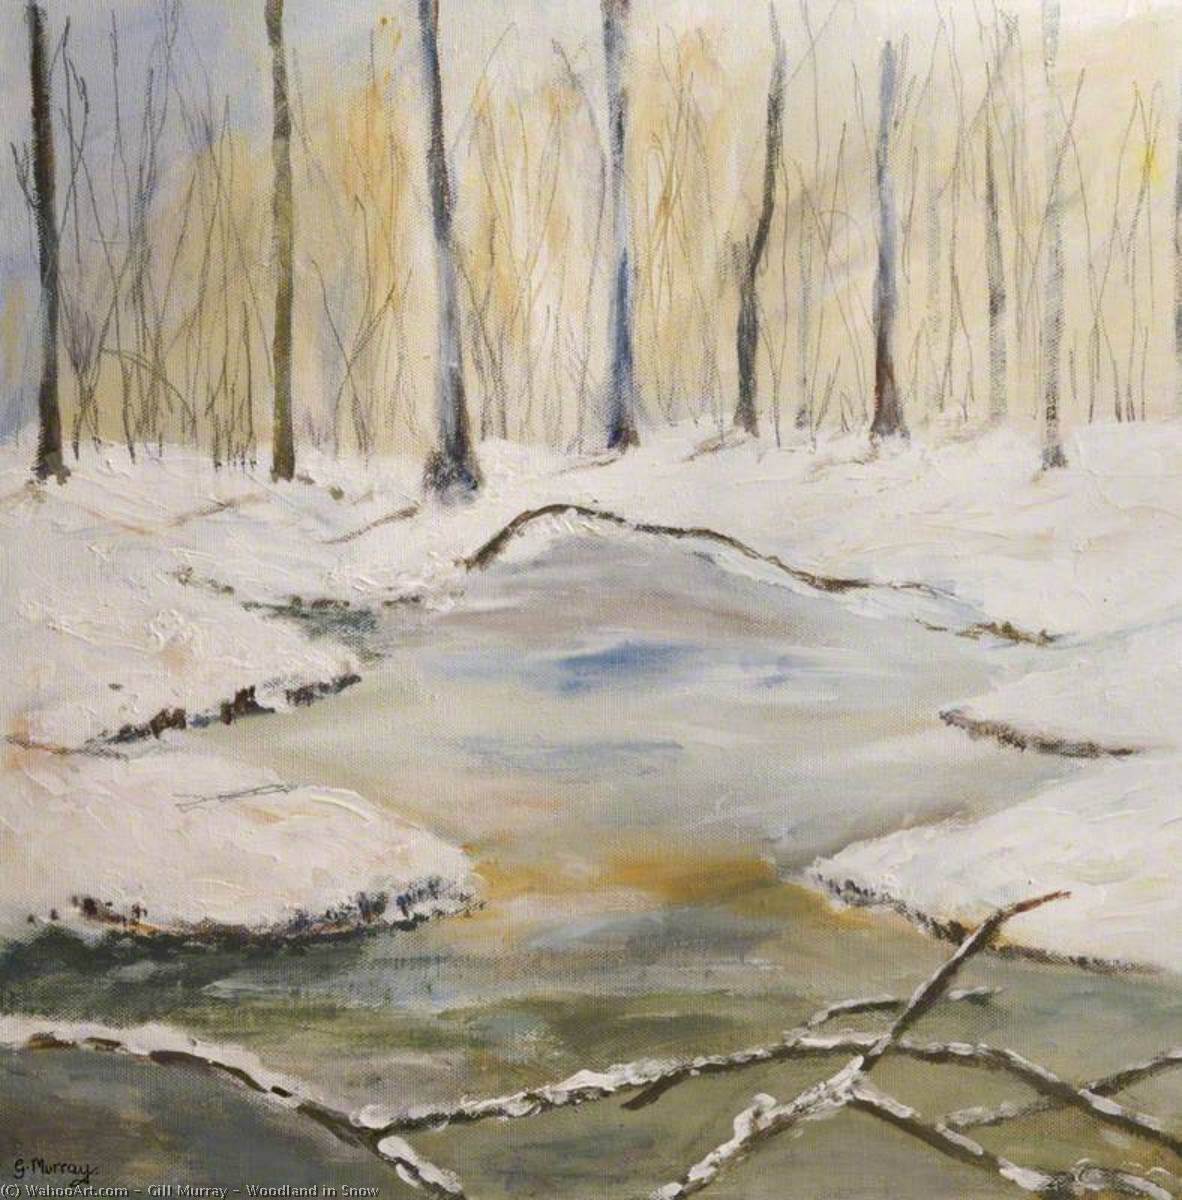 Woodland in Snow, 2008 by Gill Murray | Reproductions Gill Murray | WahooArt.com